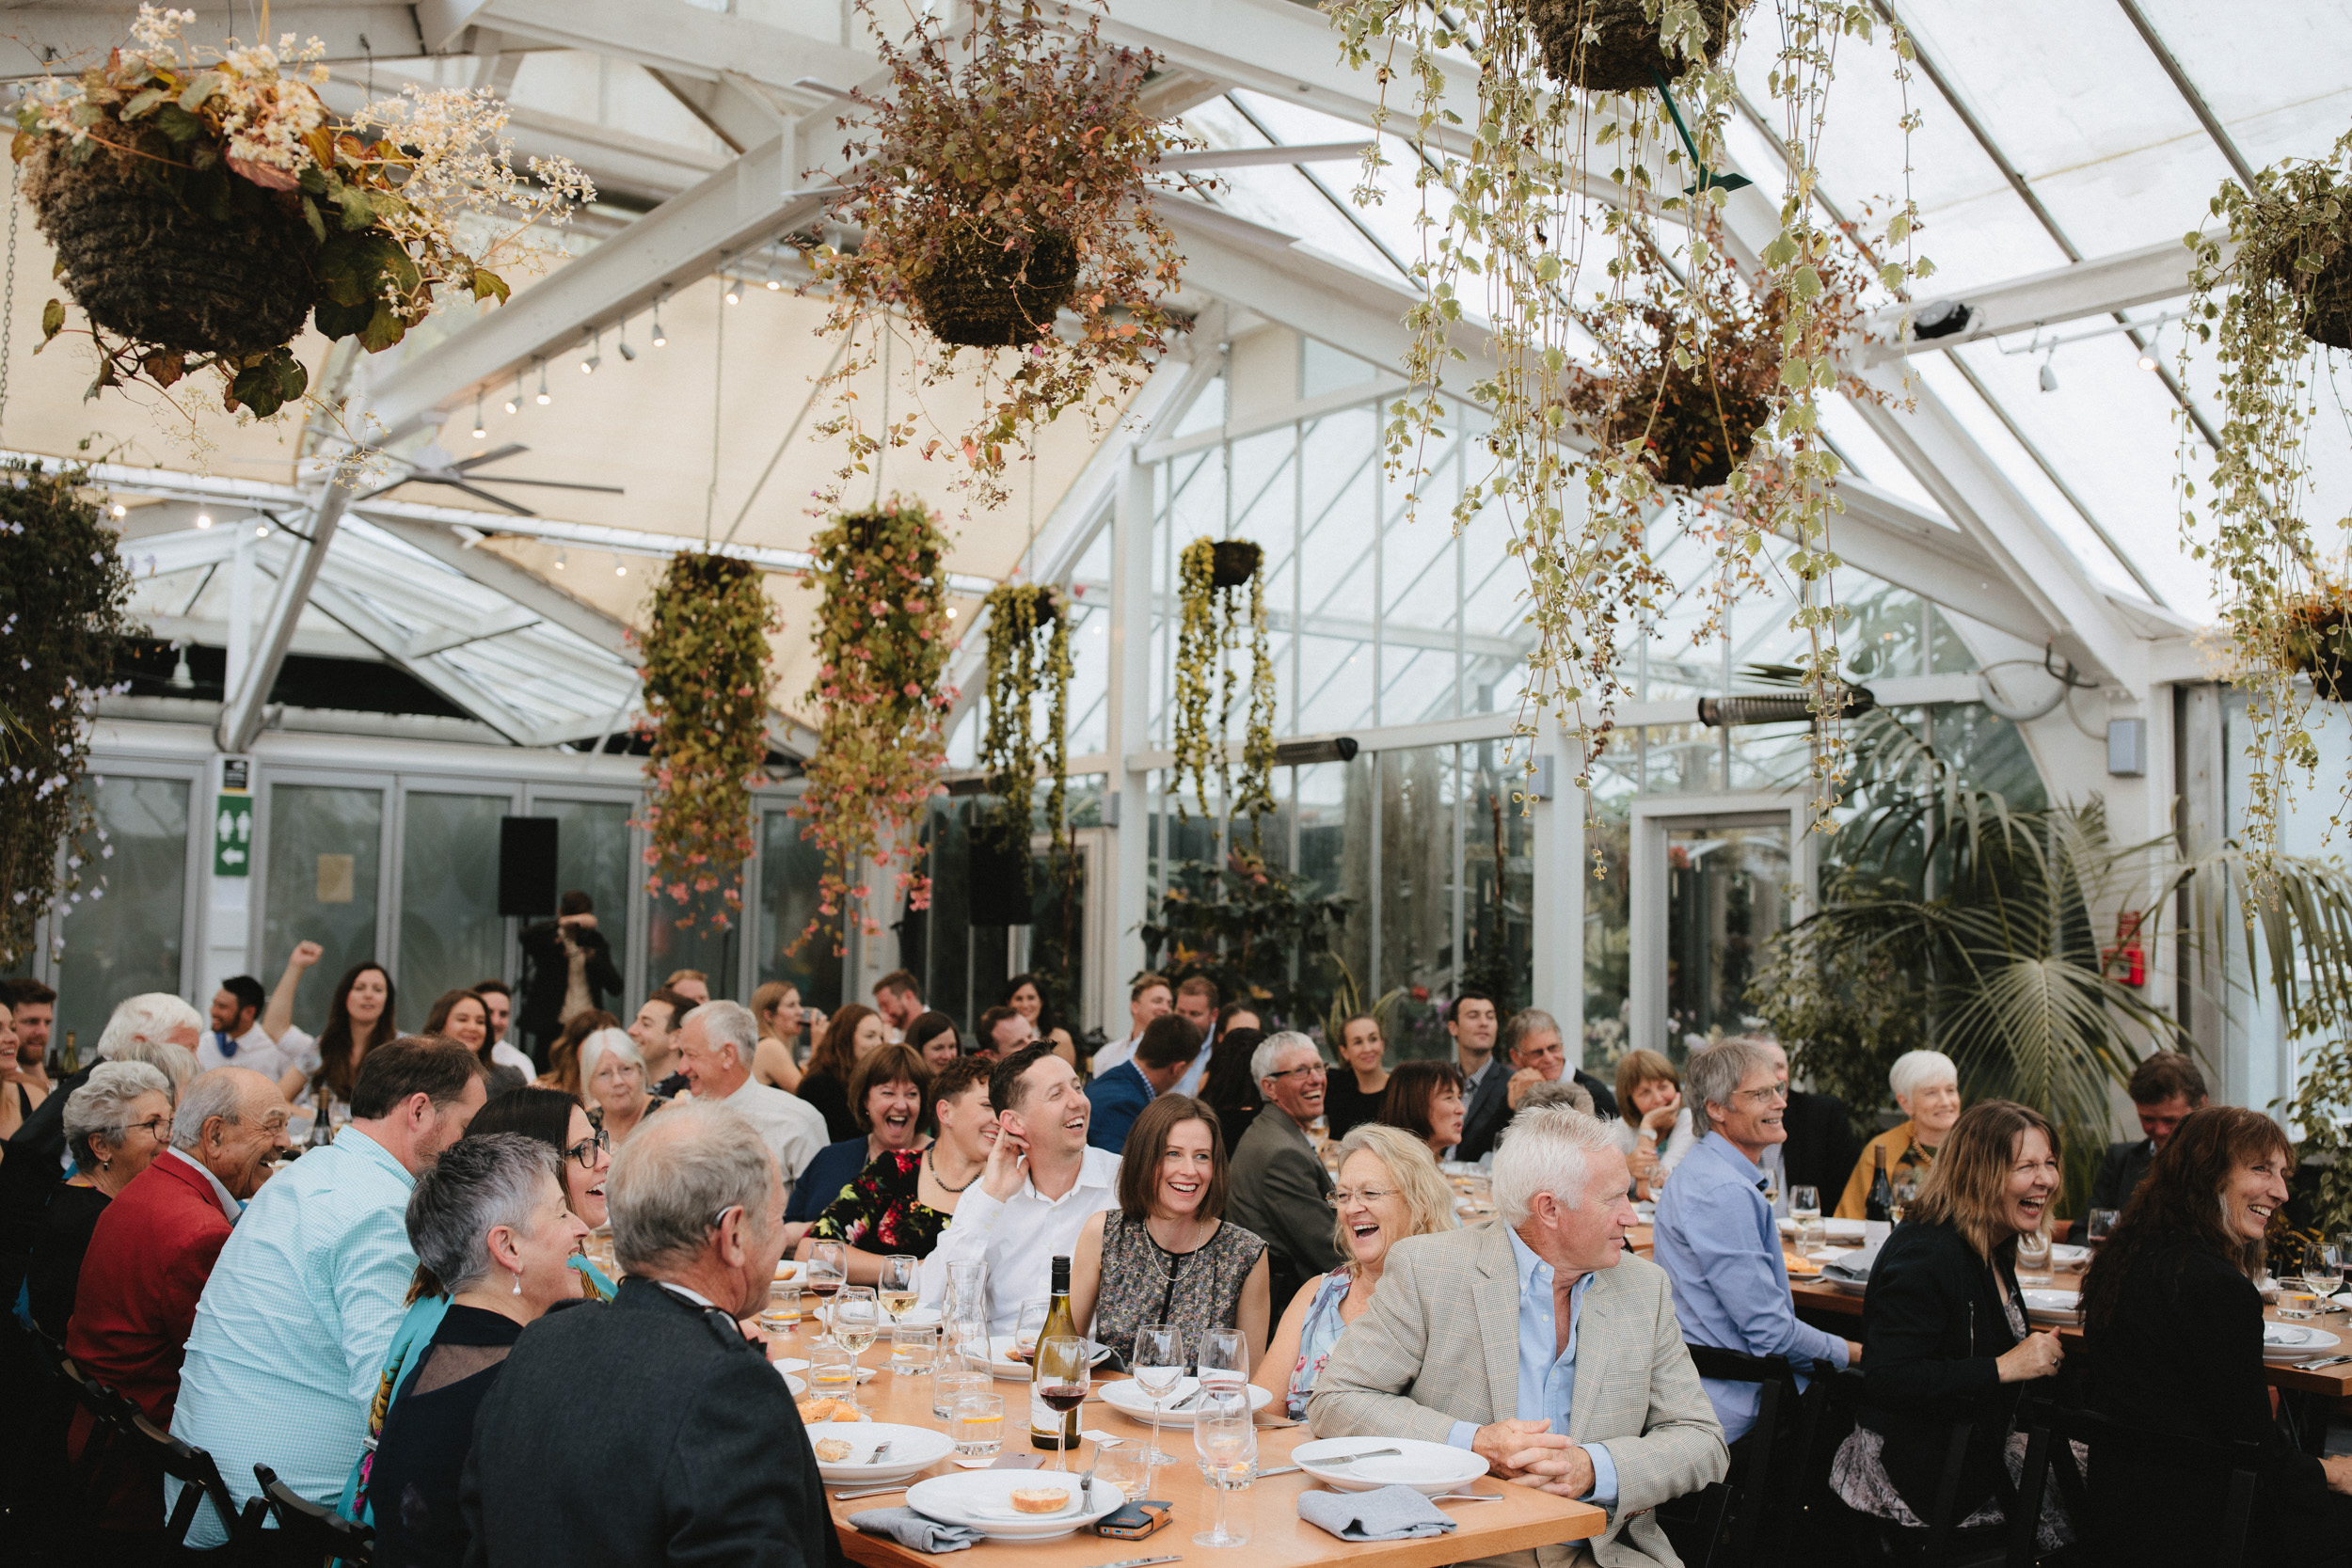 wedding guests enjoying themselves amongst the plants in this Begonia House wedding